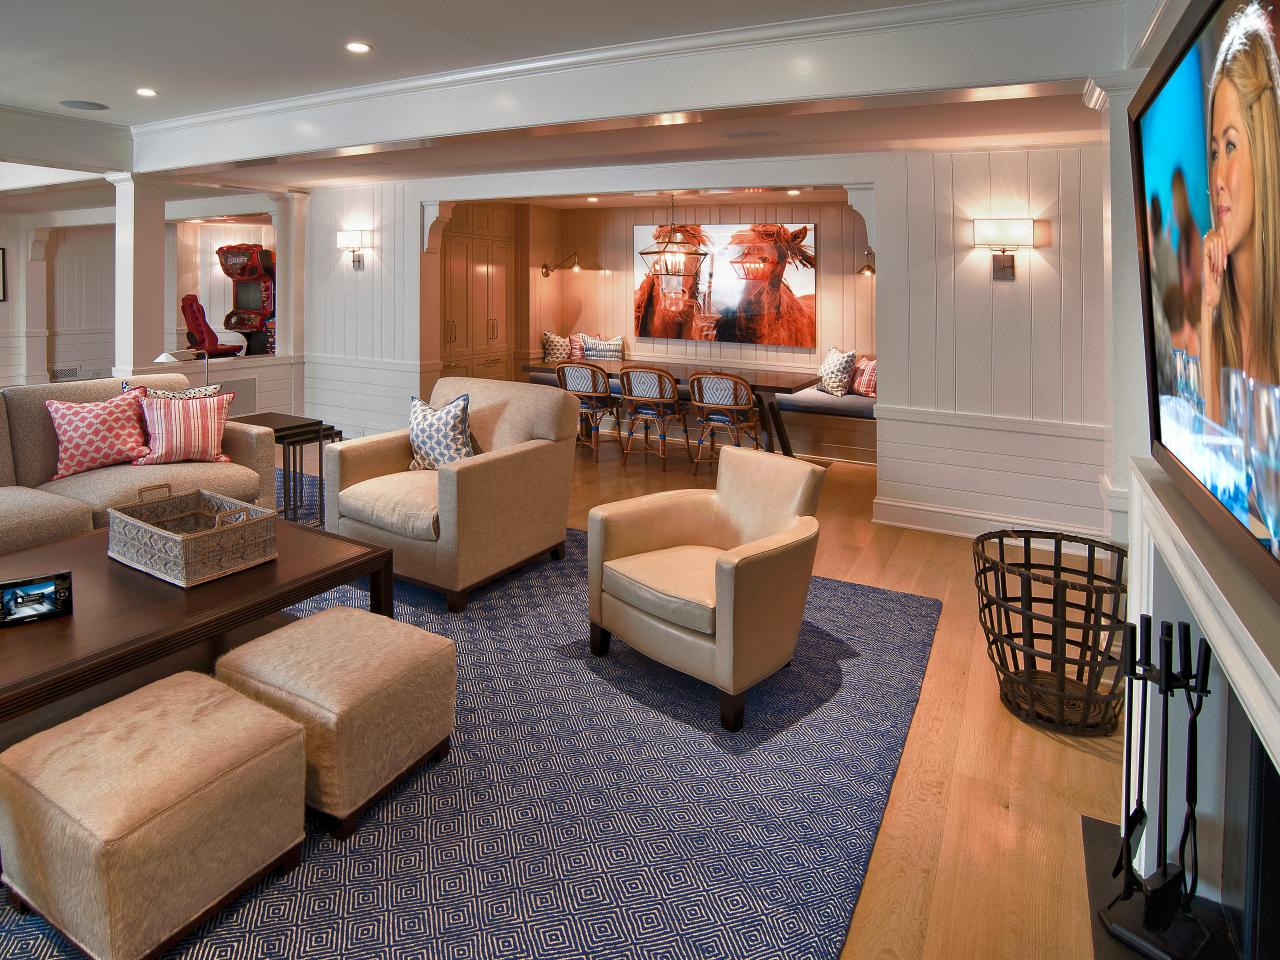 Basement Design Ideas Designing Any Room Can Be Tough But Basement Finishing Ideas And Options HGTV